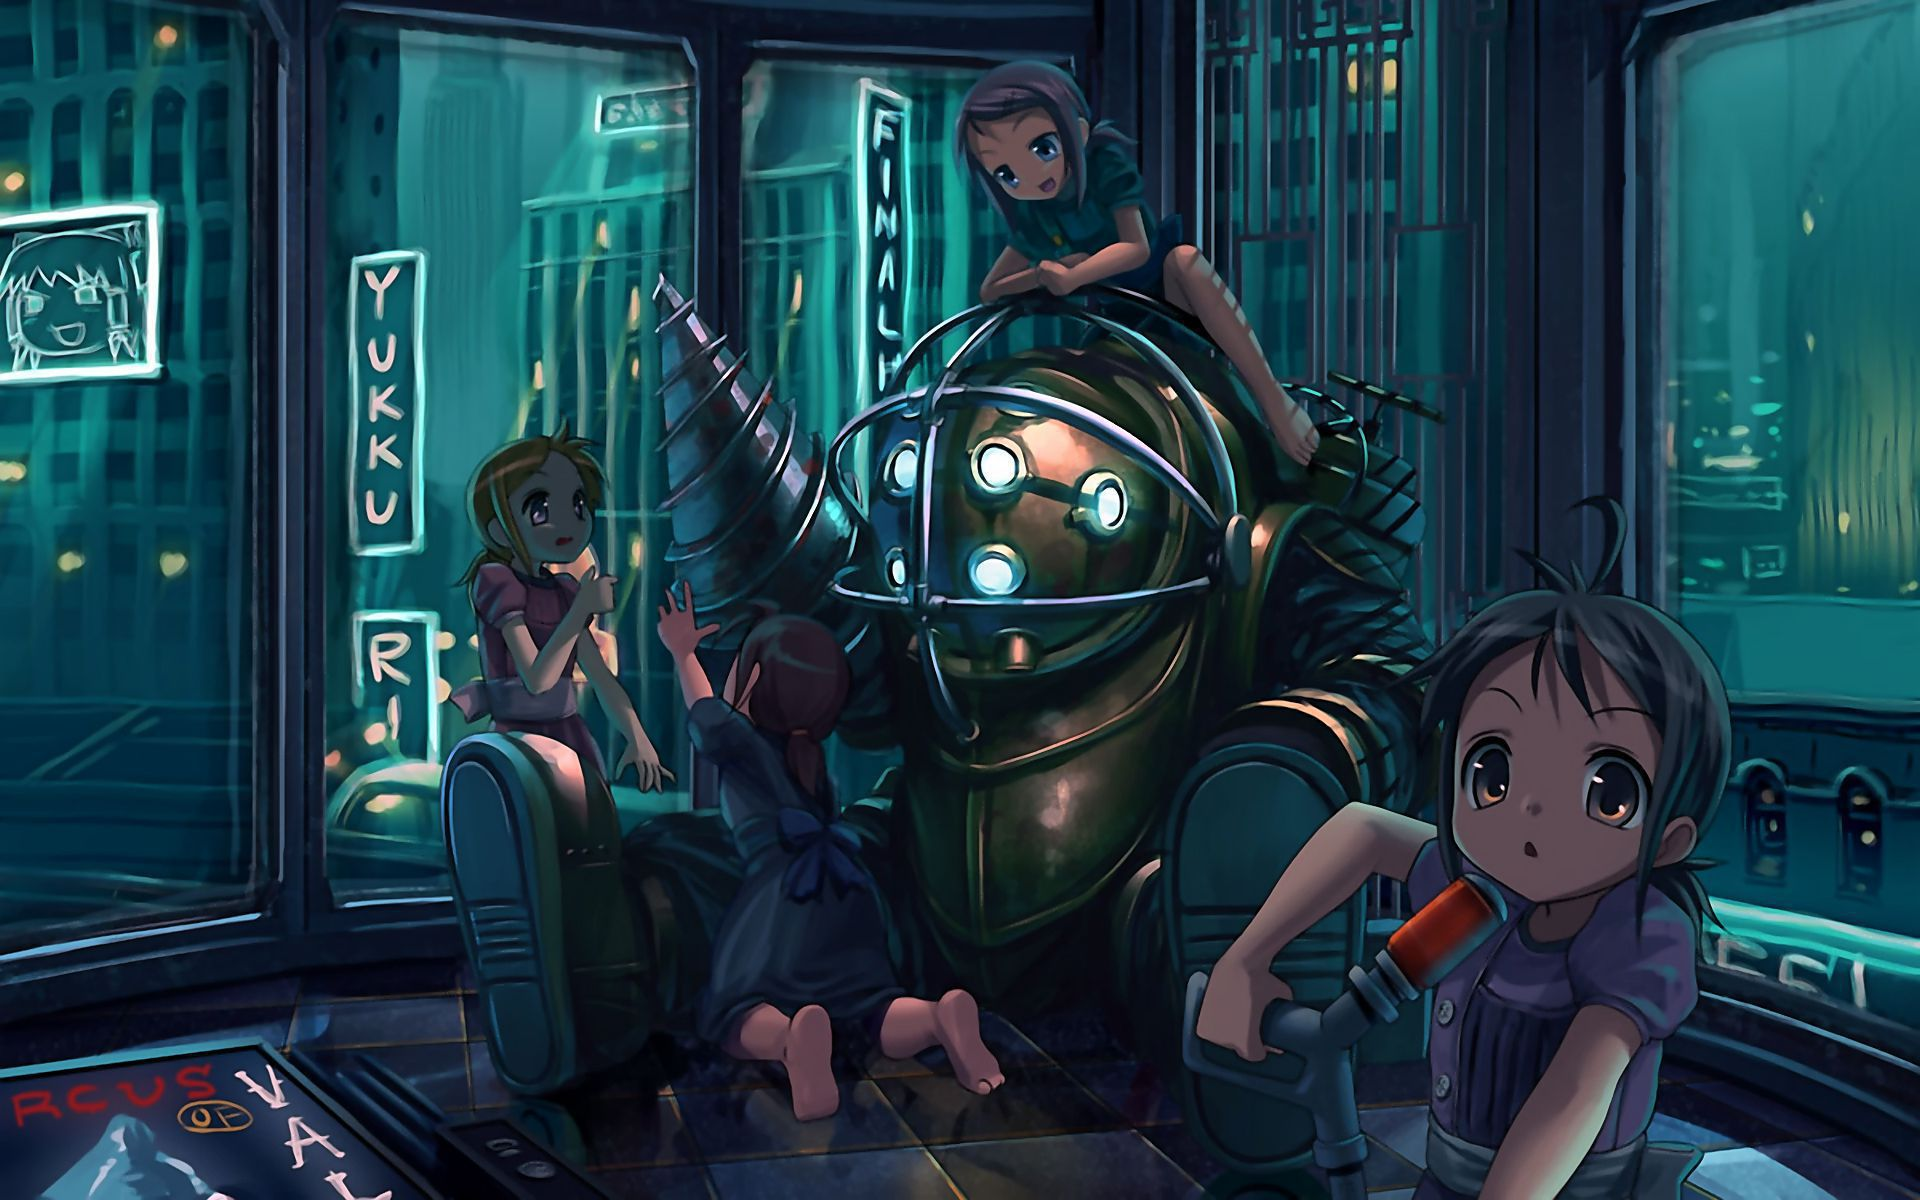 Bioshock Background